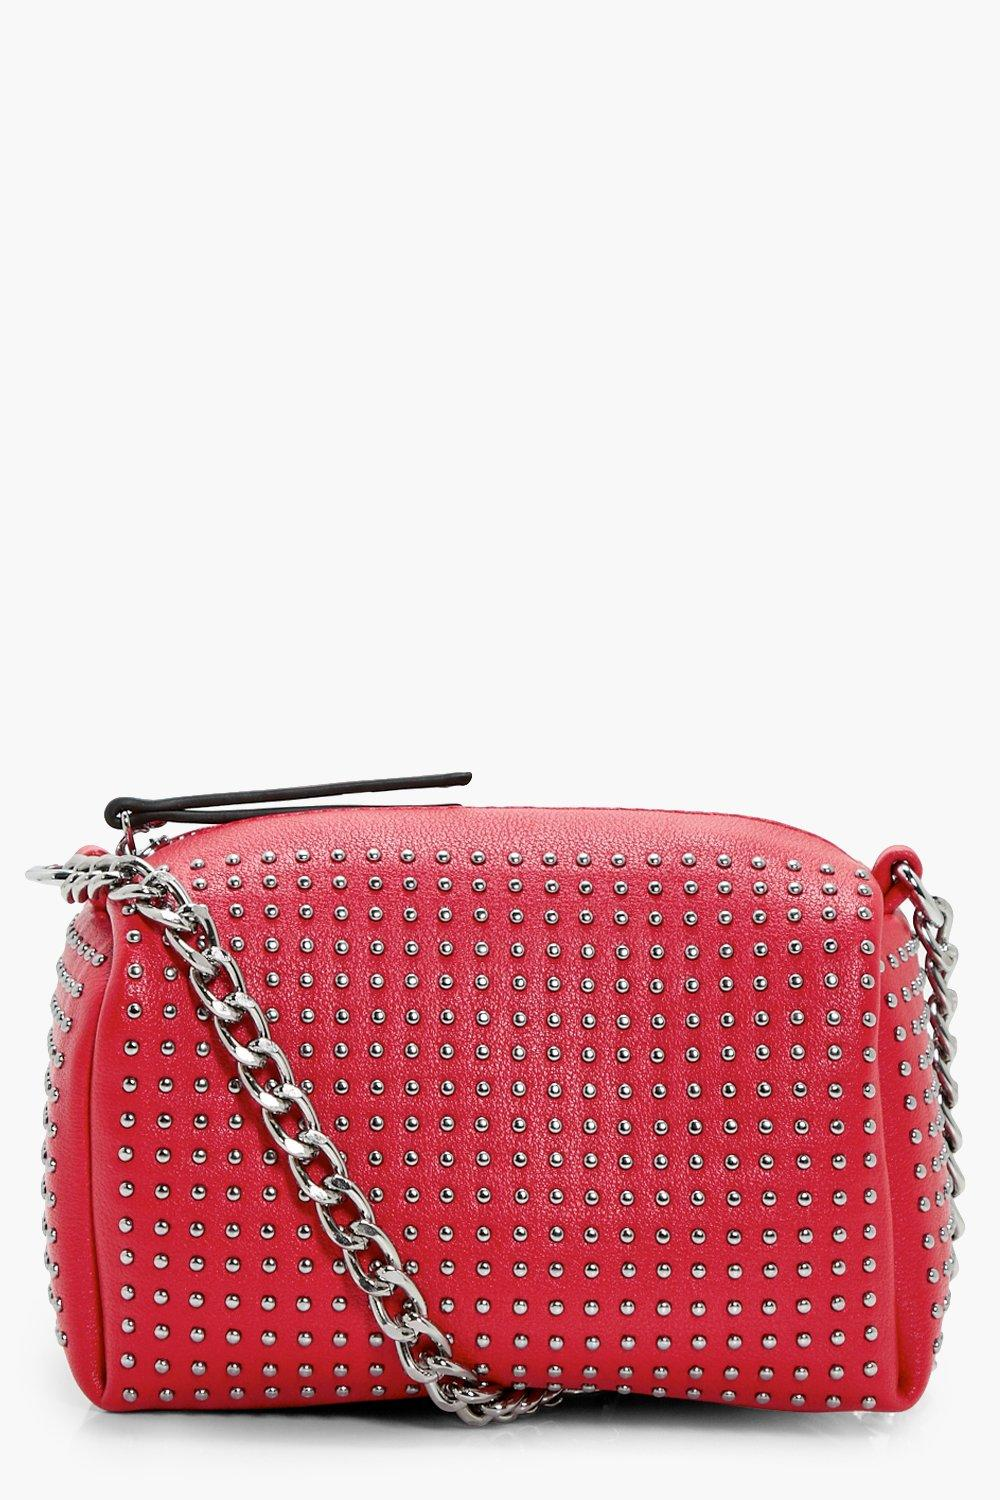 Stud Barrel Cross Body - red - Pin Stud Barrel Cro